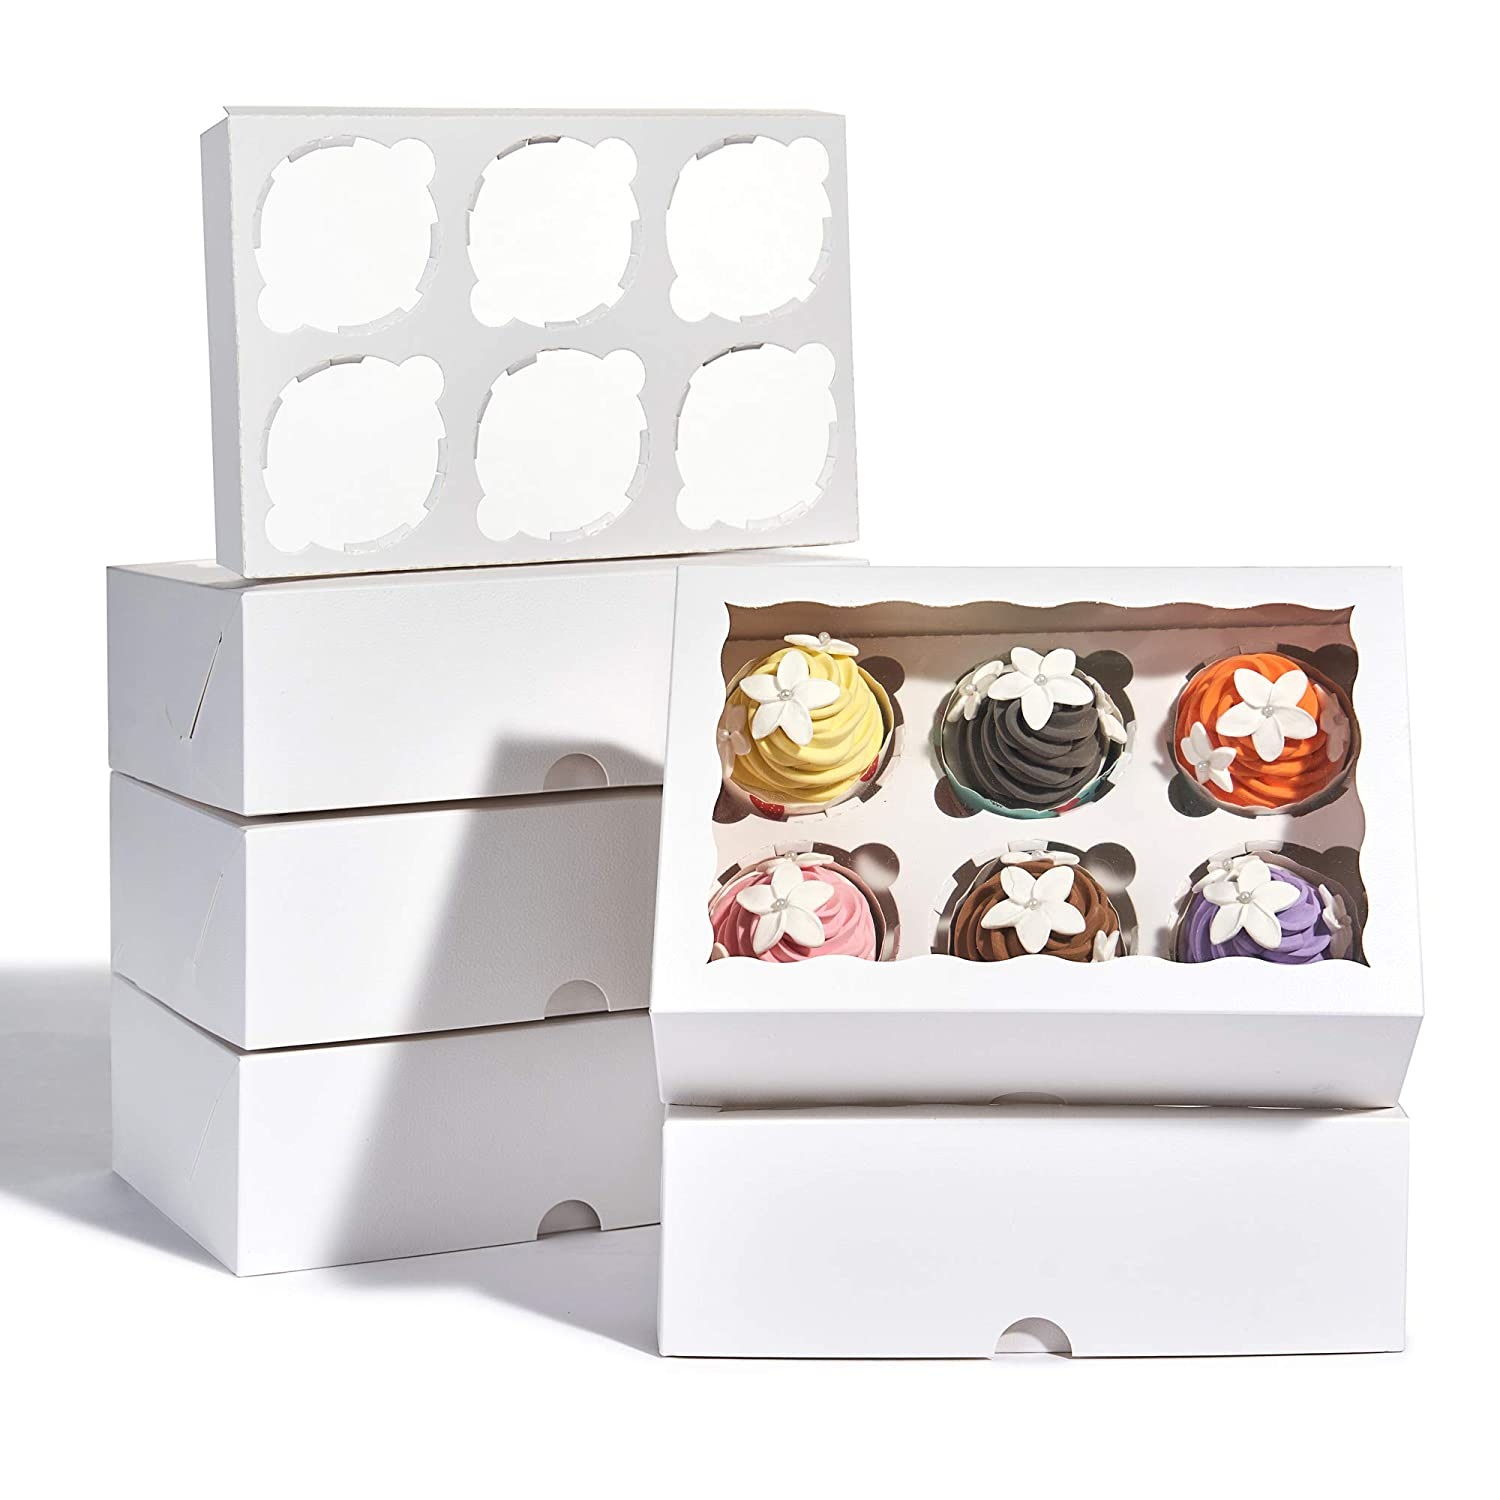 25 Pack Premium Cupcake Boxes with Display Window 9 1/2 x 6 1/5 x 3 Inch, Bakery Boxes with Insert, Cake Boxes, Cookie Boxes, Cupcake Containers, White Cupcake Boxes 6 Count